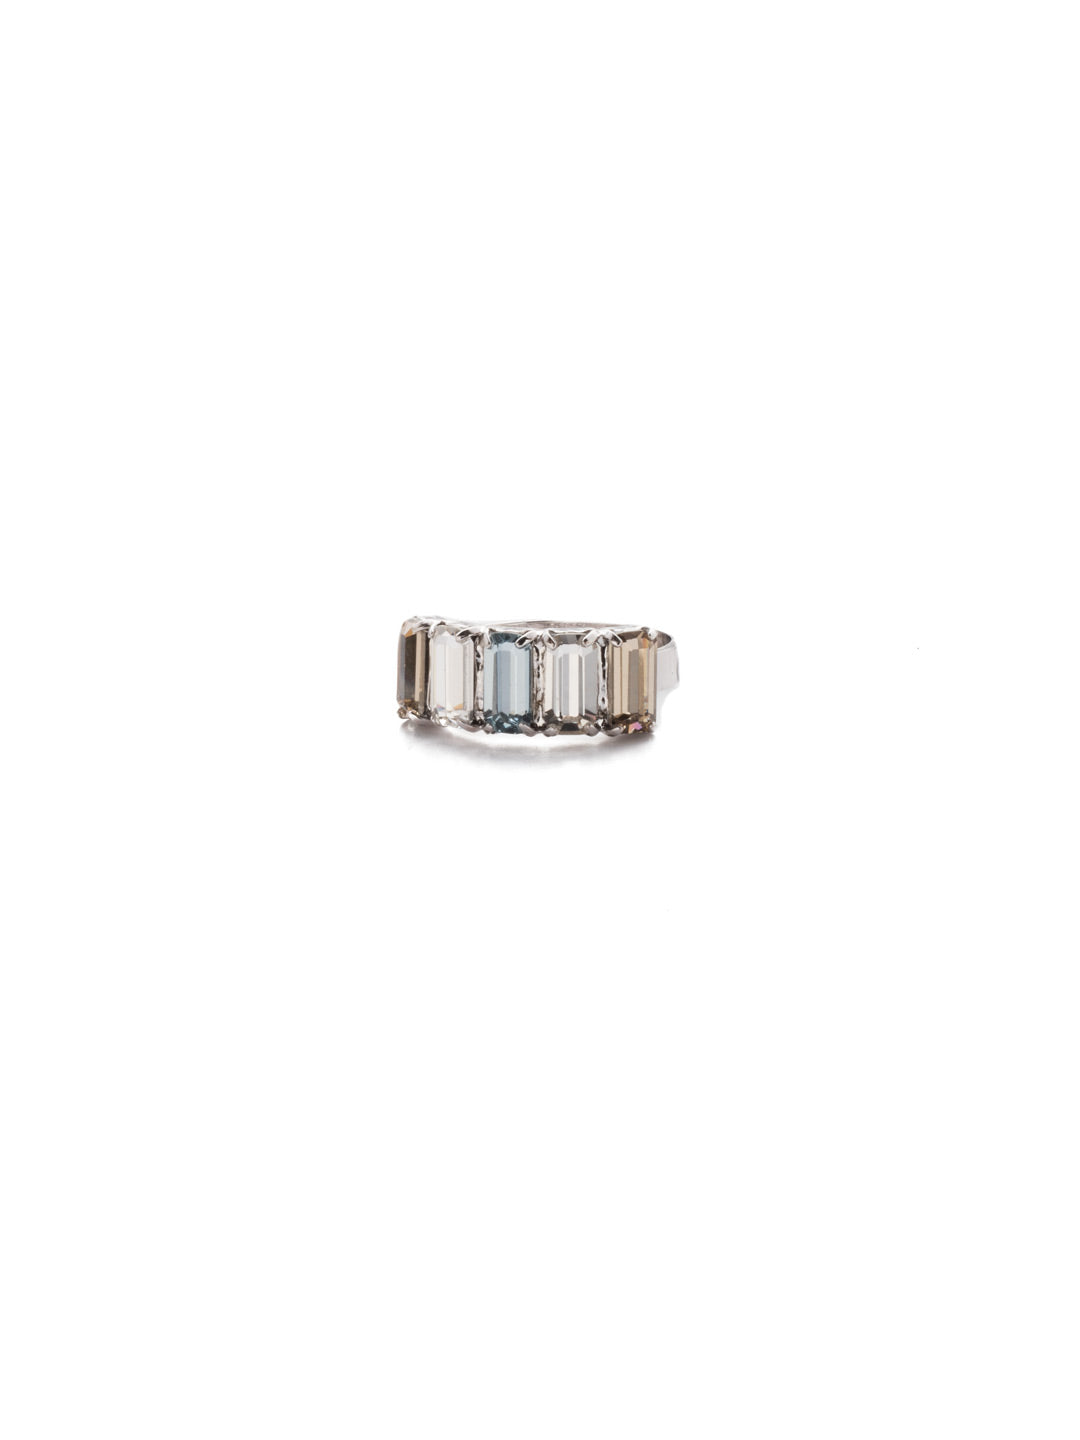 Arden Band Ring - REF29RHNTB